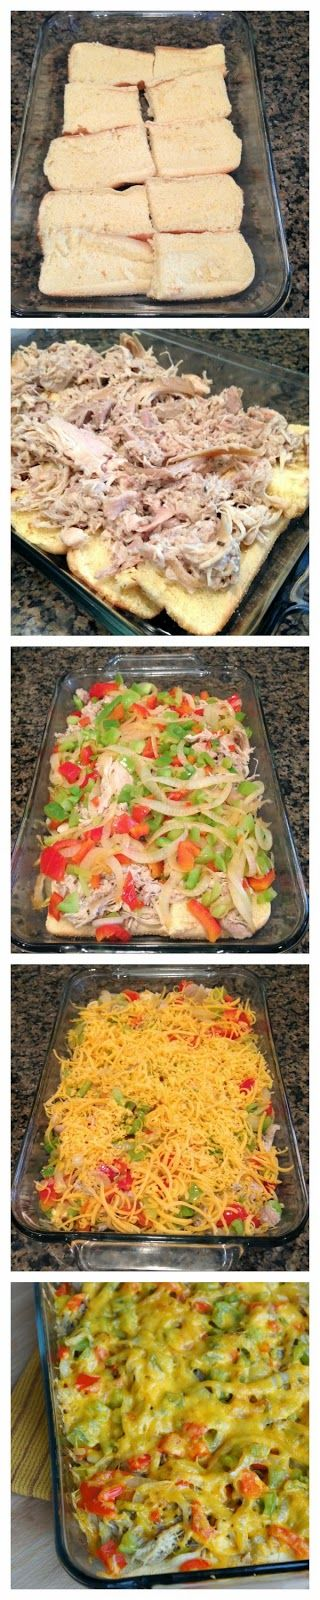 Recipe for Chicken Philly Sandwich Casserole...a portable way to serve these delicious sandwiches!